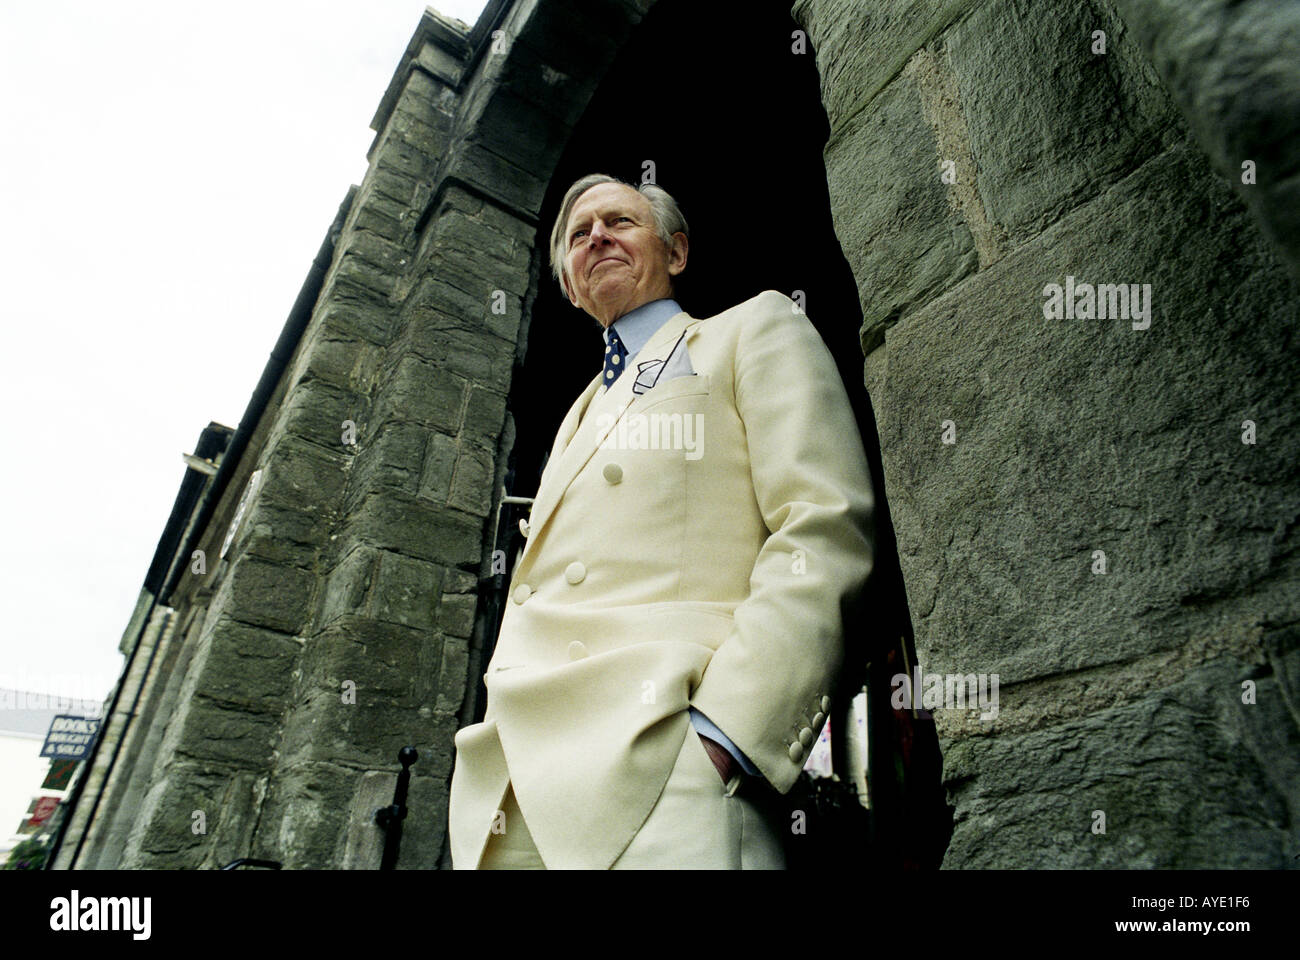 Author Tom Wolfe at the Hay literary festival in Hay on Wye Herefordshire UK on 7 June 1999 - Stock Image